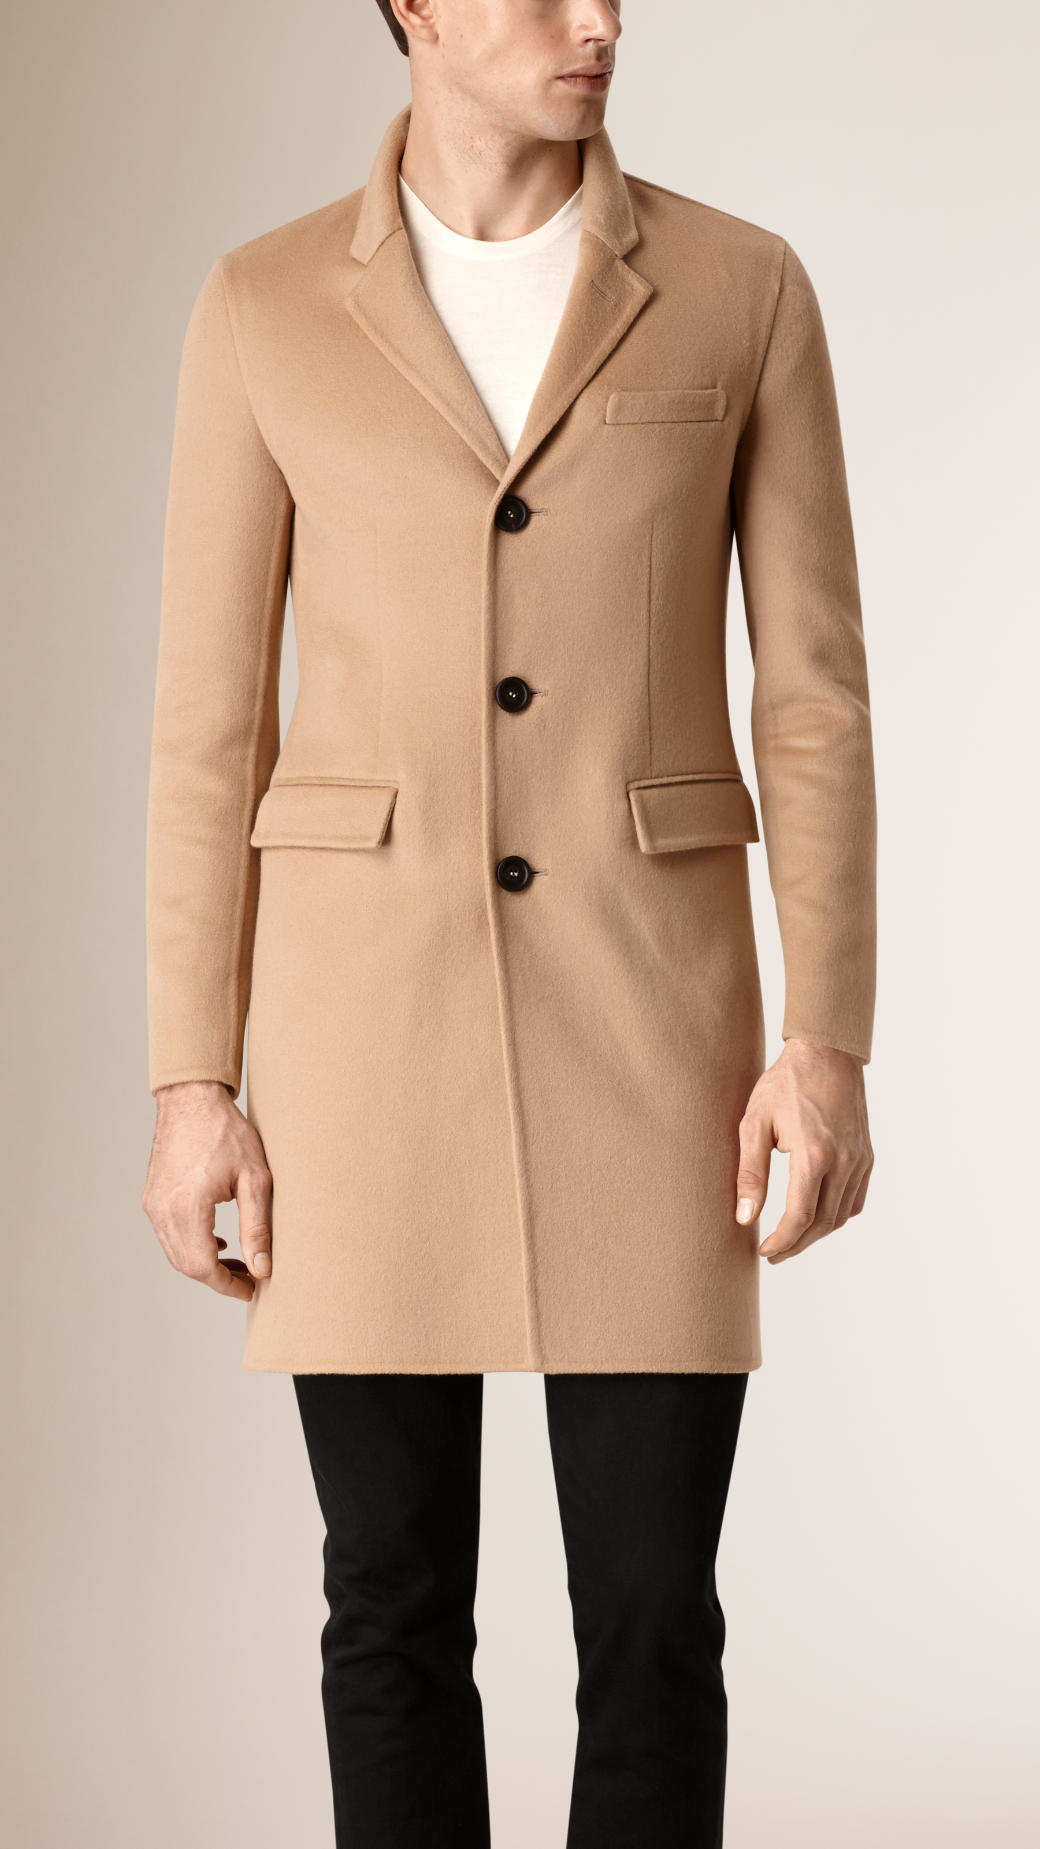 Burberry Tailored Cashmere Coat in Natural for Men | Lyst